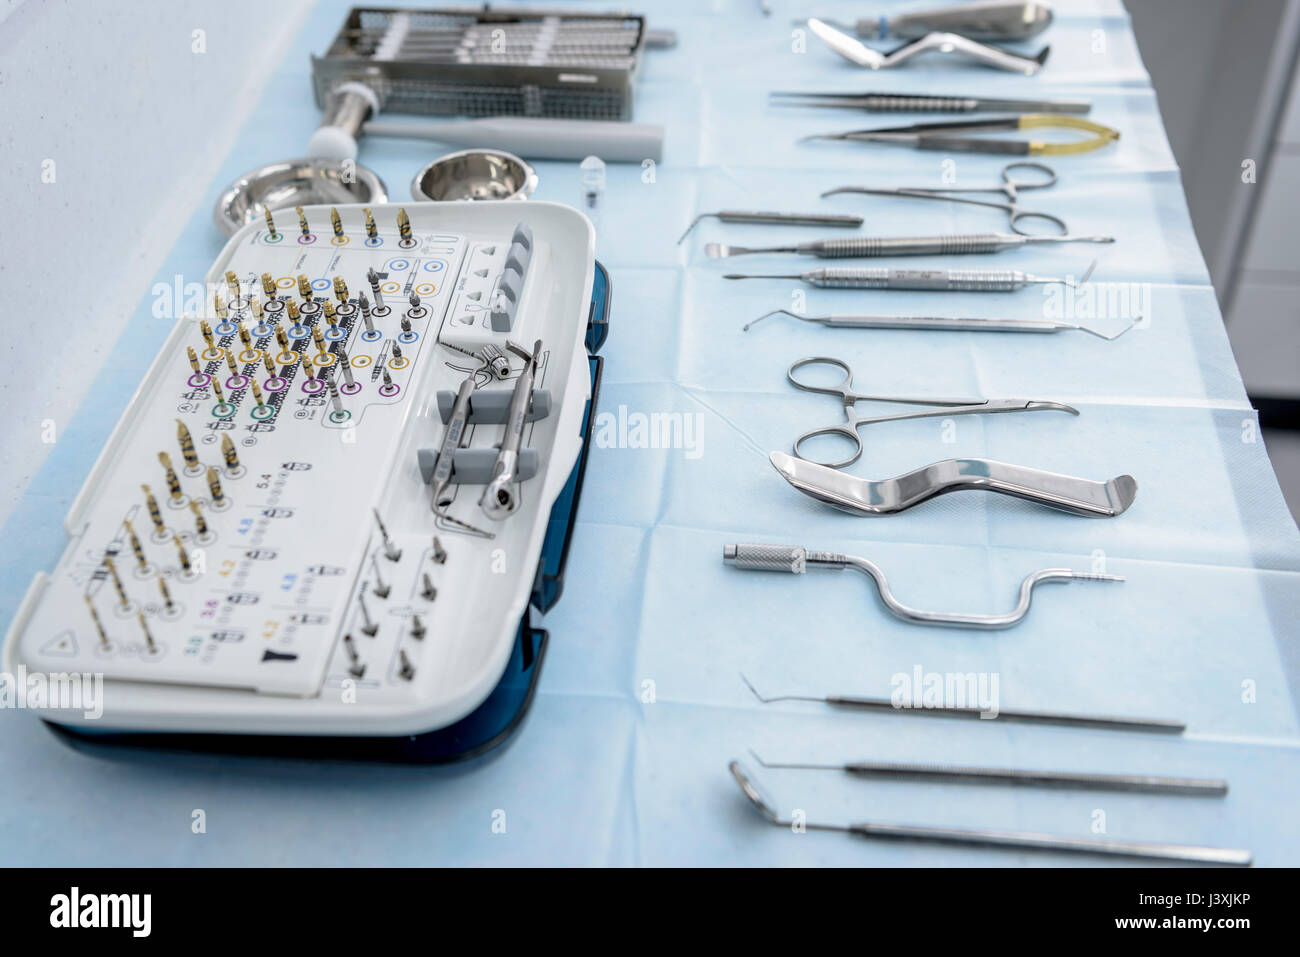 Selection of dental tools in dental surgery - Stock Image